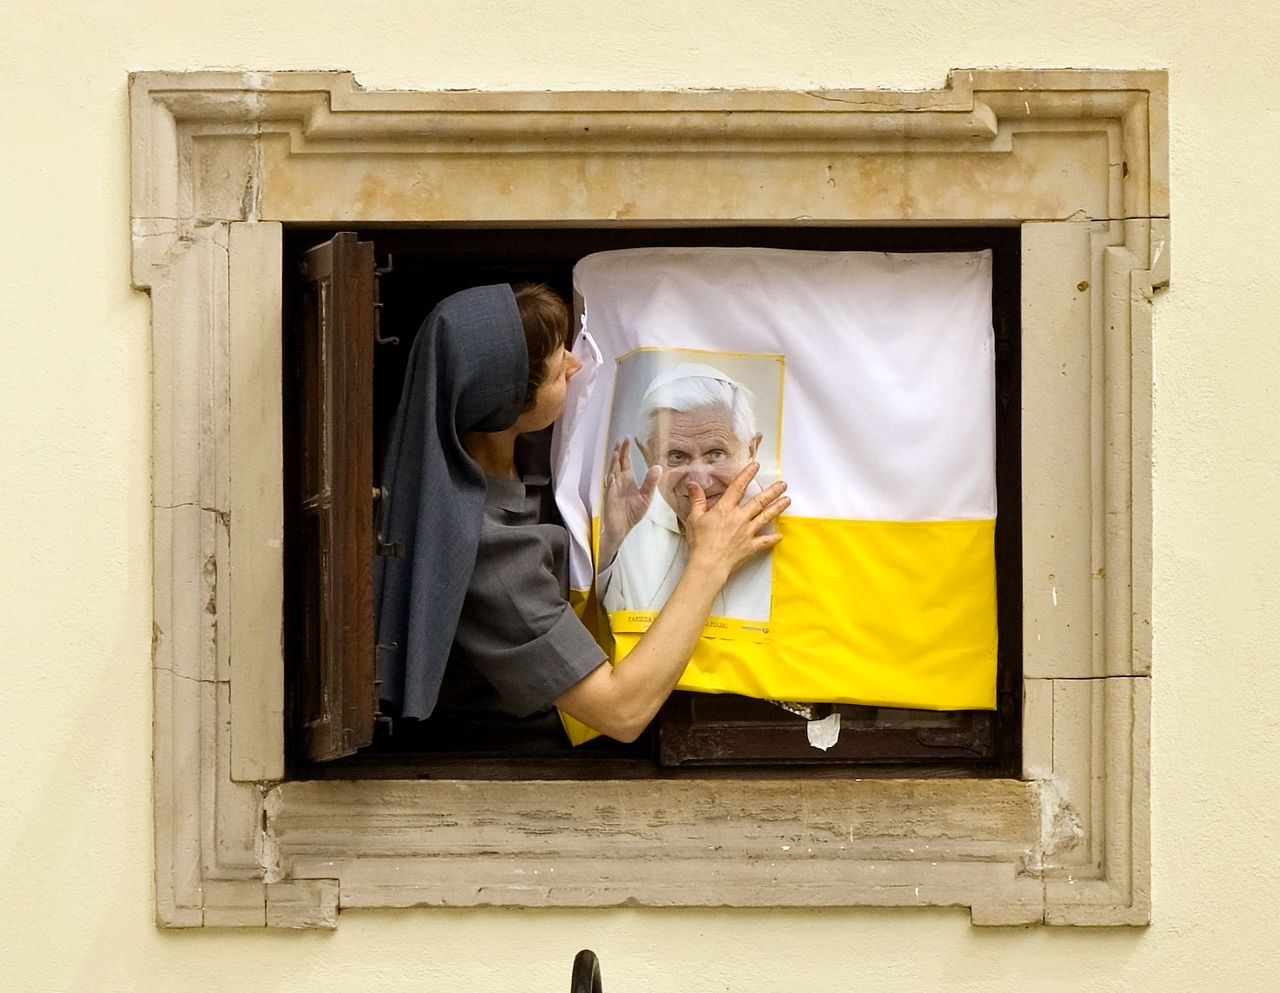 Een Poolse non bevestigt een portret van paus Benedictus XVI en de Vaticaanse vlag op een raam van haar klooster in de oude stad van Warschau. Foto AP A nun fixes a poster of pope Benedict XVI in a window next to the St. John's cathedral in the old town of Warsaw, Poland, Wednesday, May 24, 2006. The pontiff will meet with the clergy in the cathedral on Thursday, May 25, 2006 during his four day visit to Poland. (AP Photo/Vadim Ghirda)